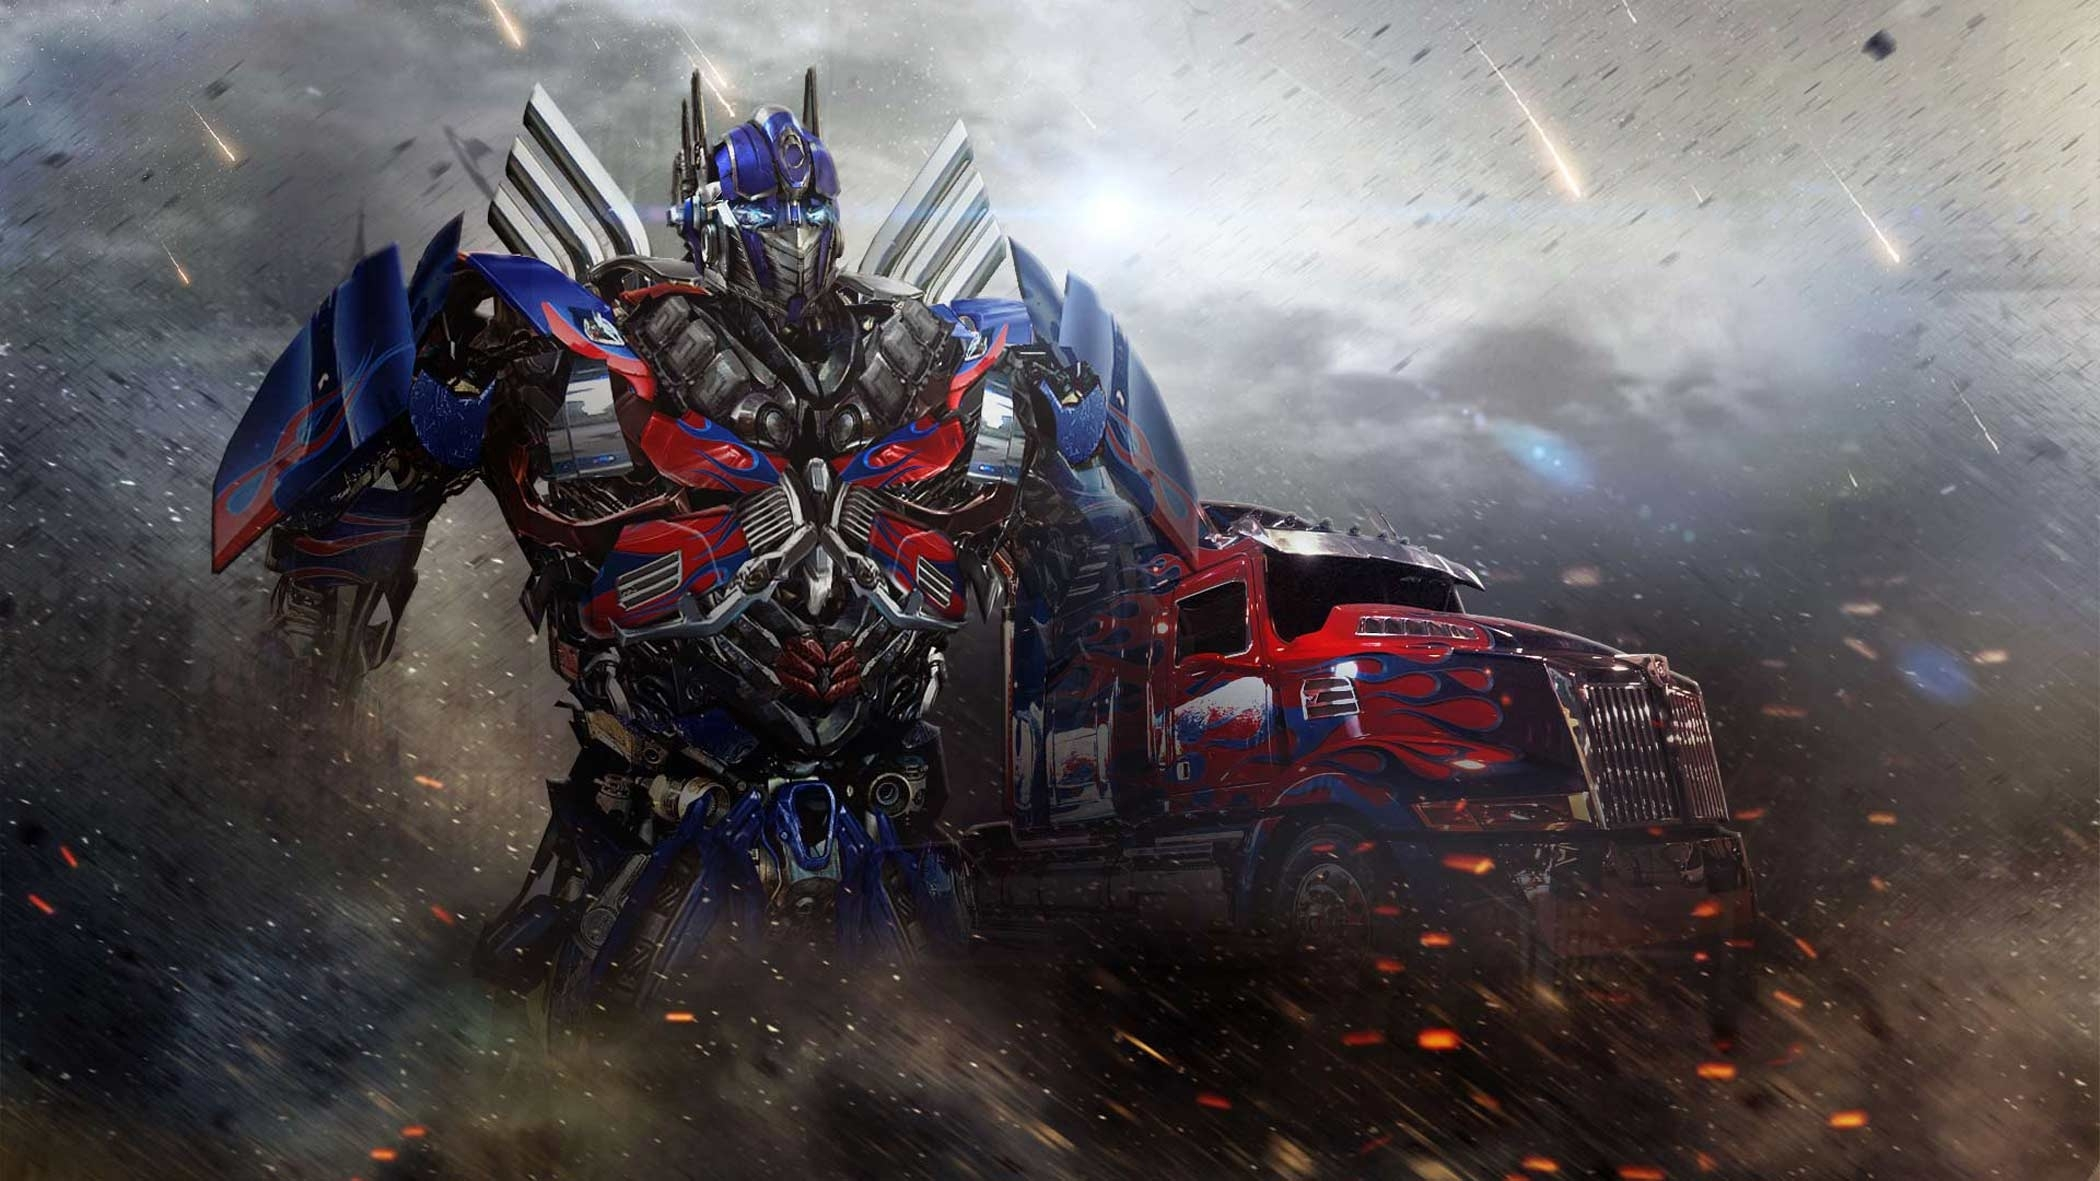 transformers age of extinction full hd wallpaper - wallpaper hd